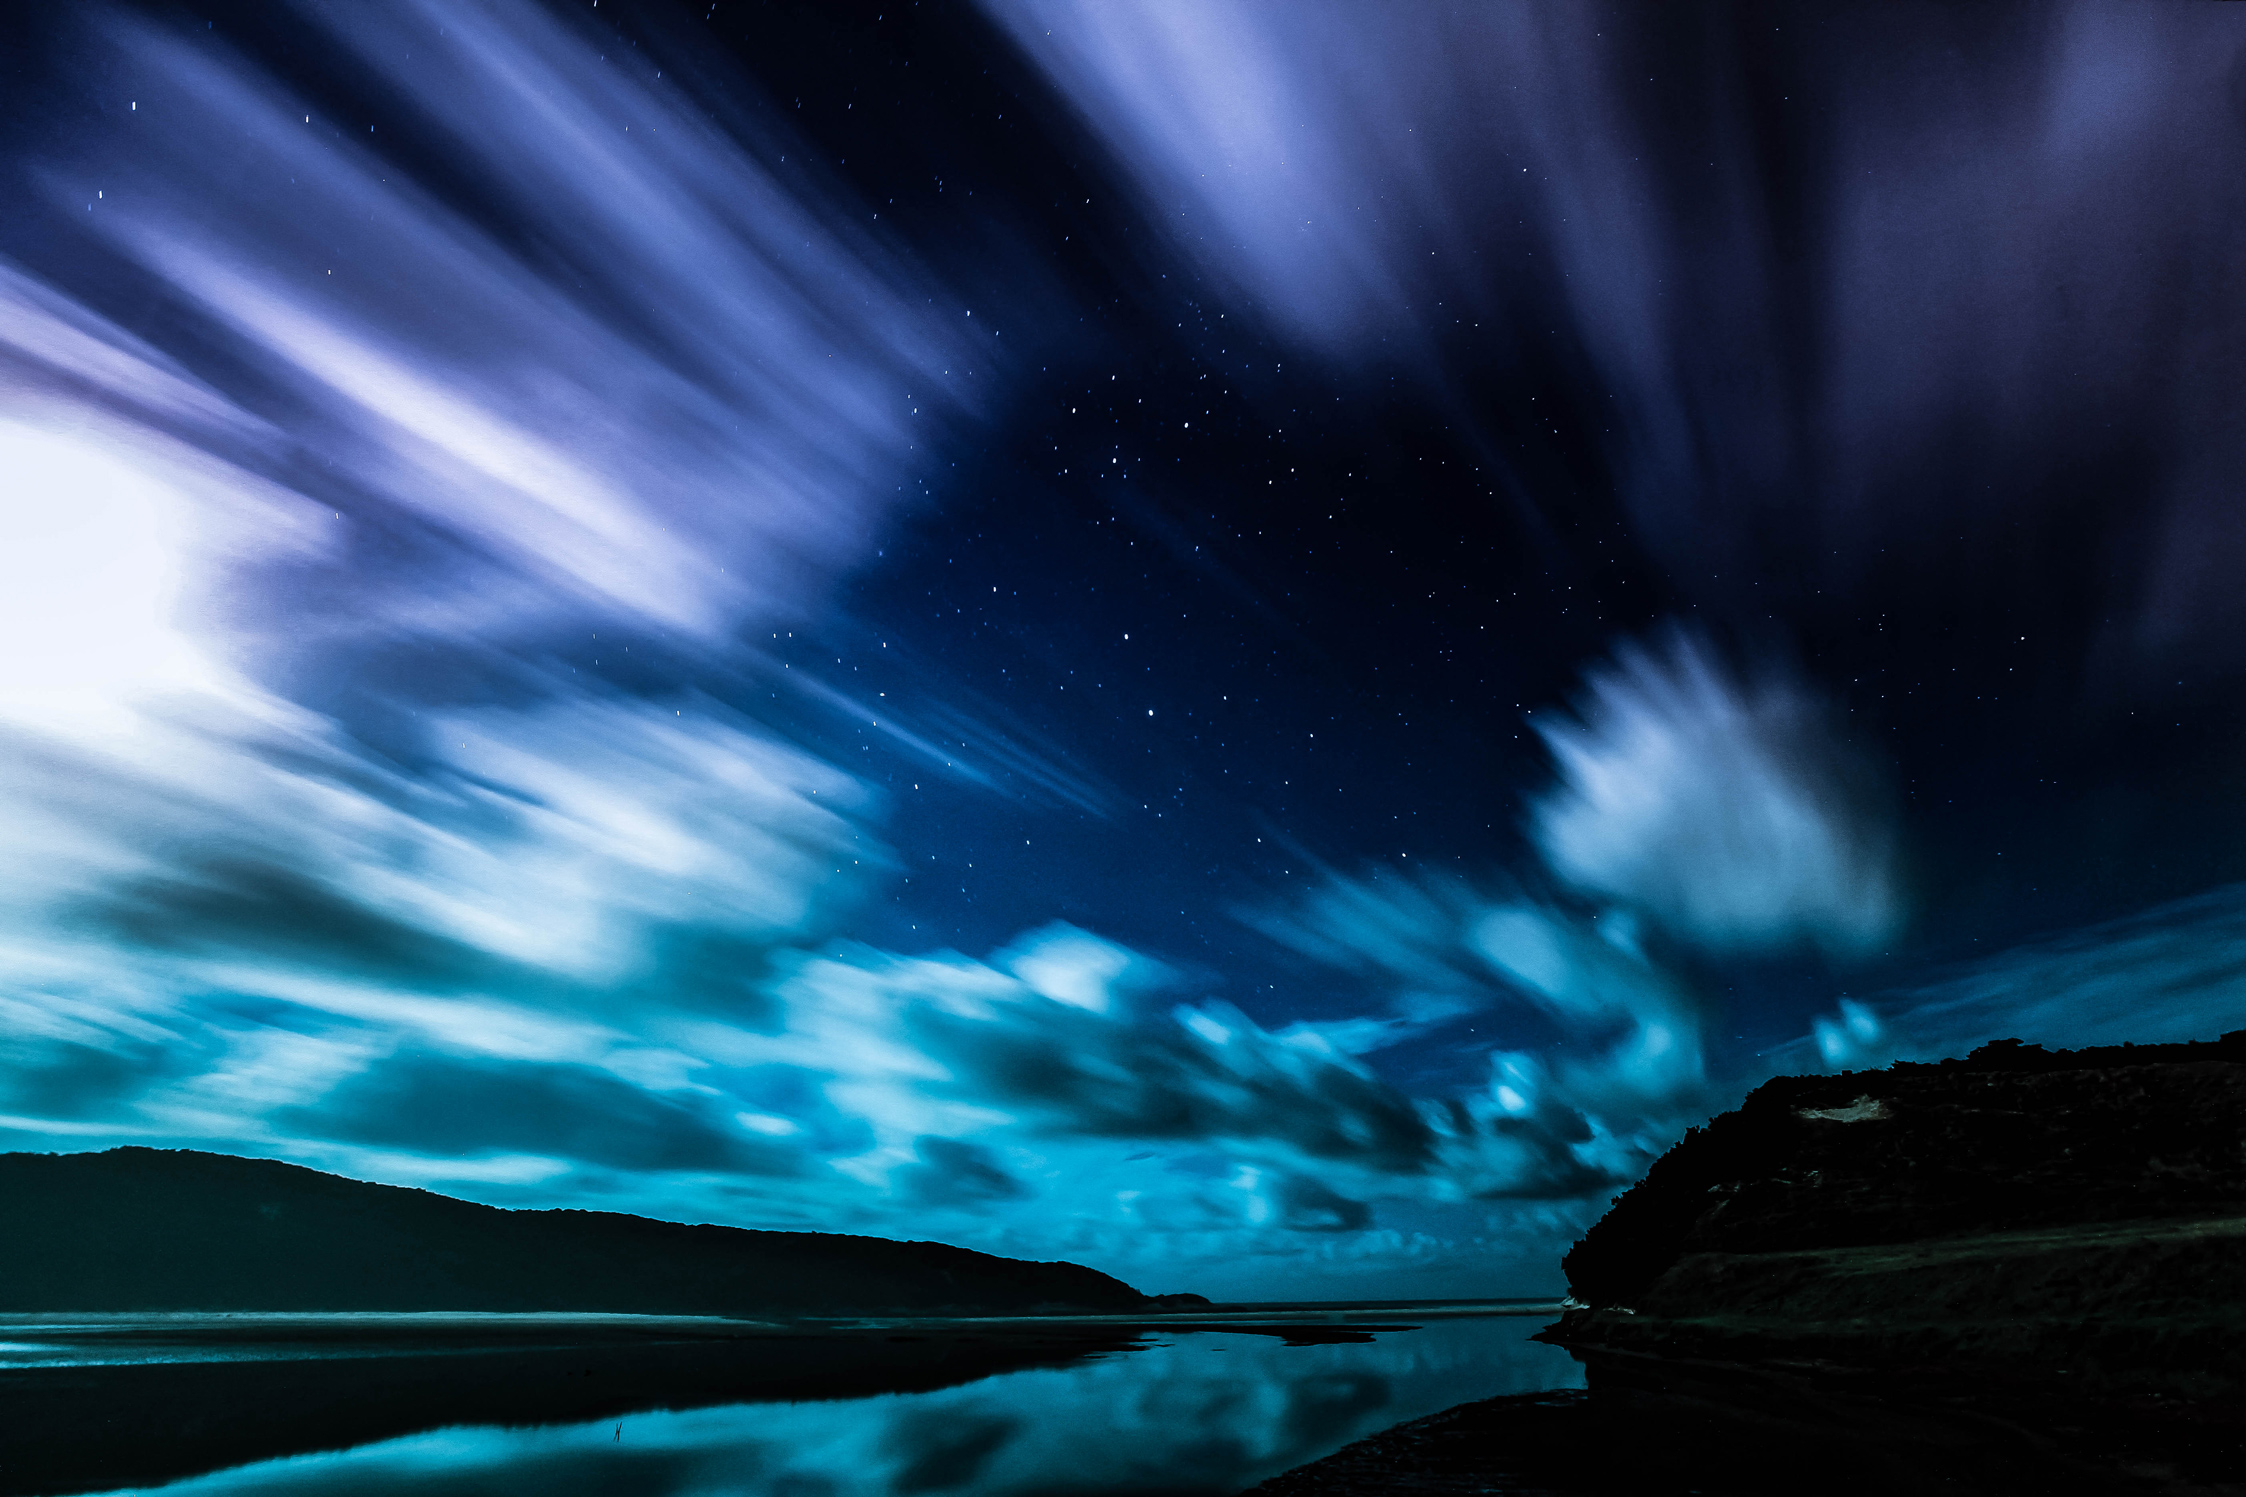 night landscape - stars shining through clouds and clouds reflecting on river - southern cross - long exposure